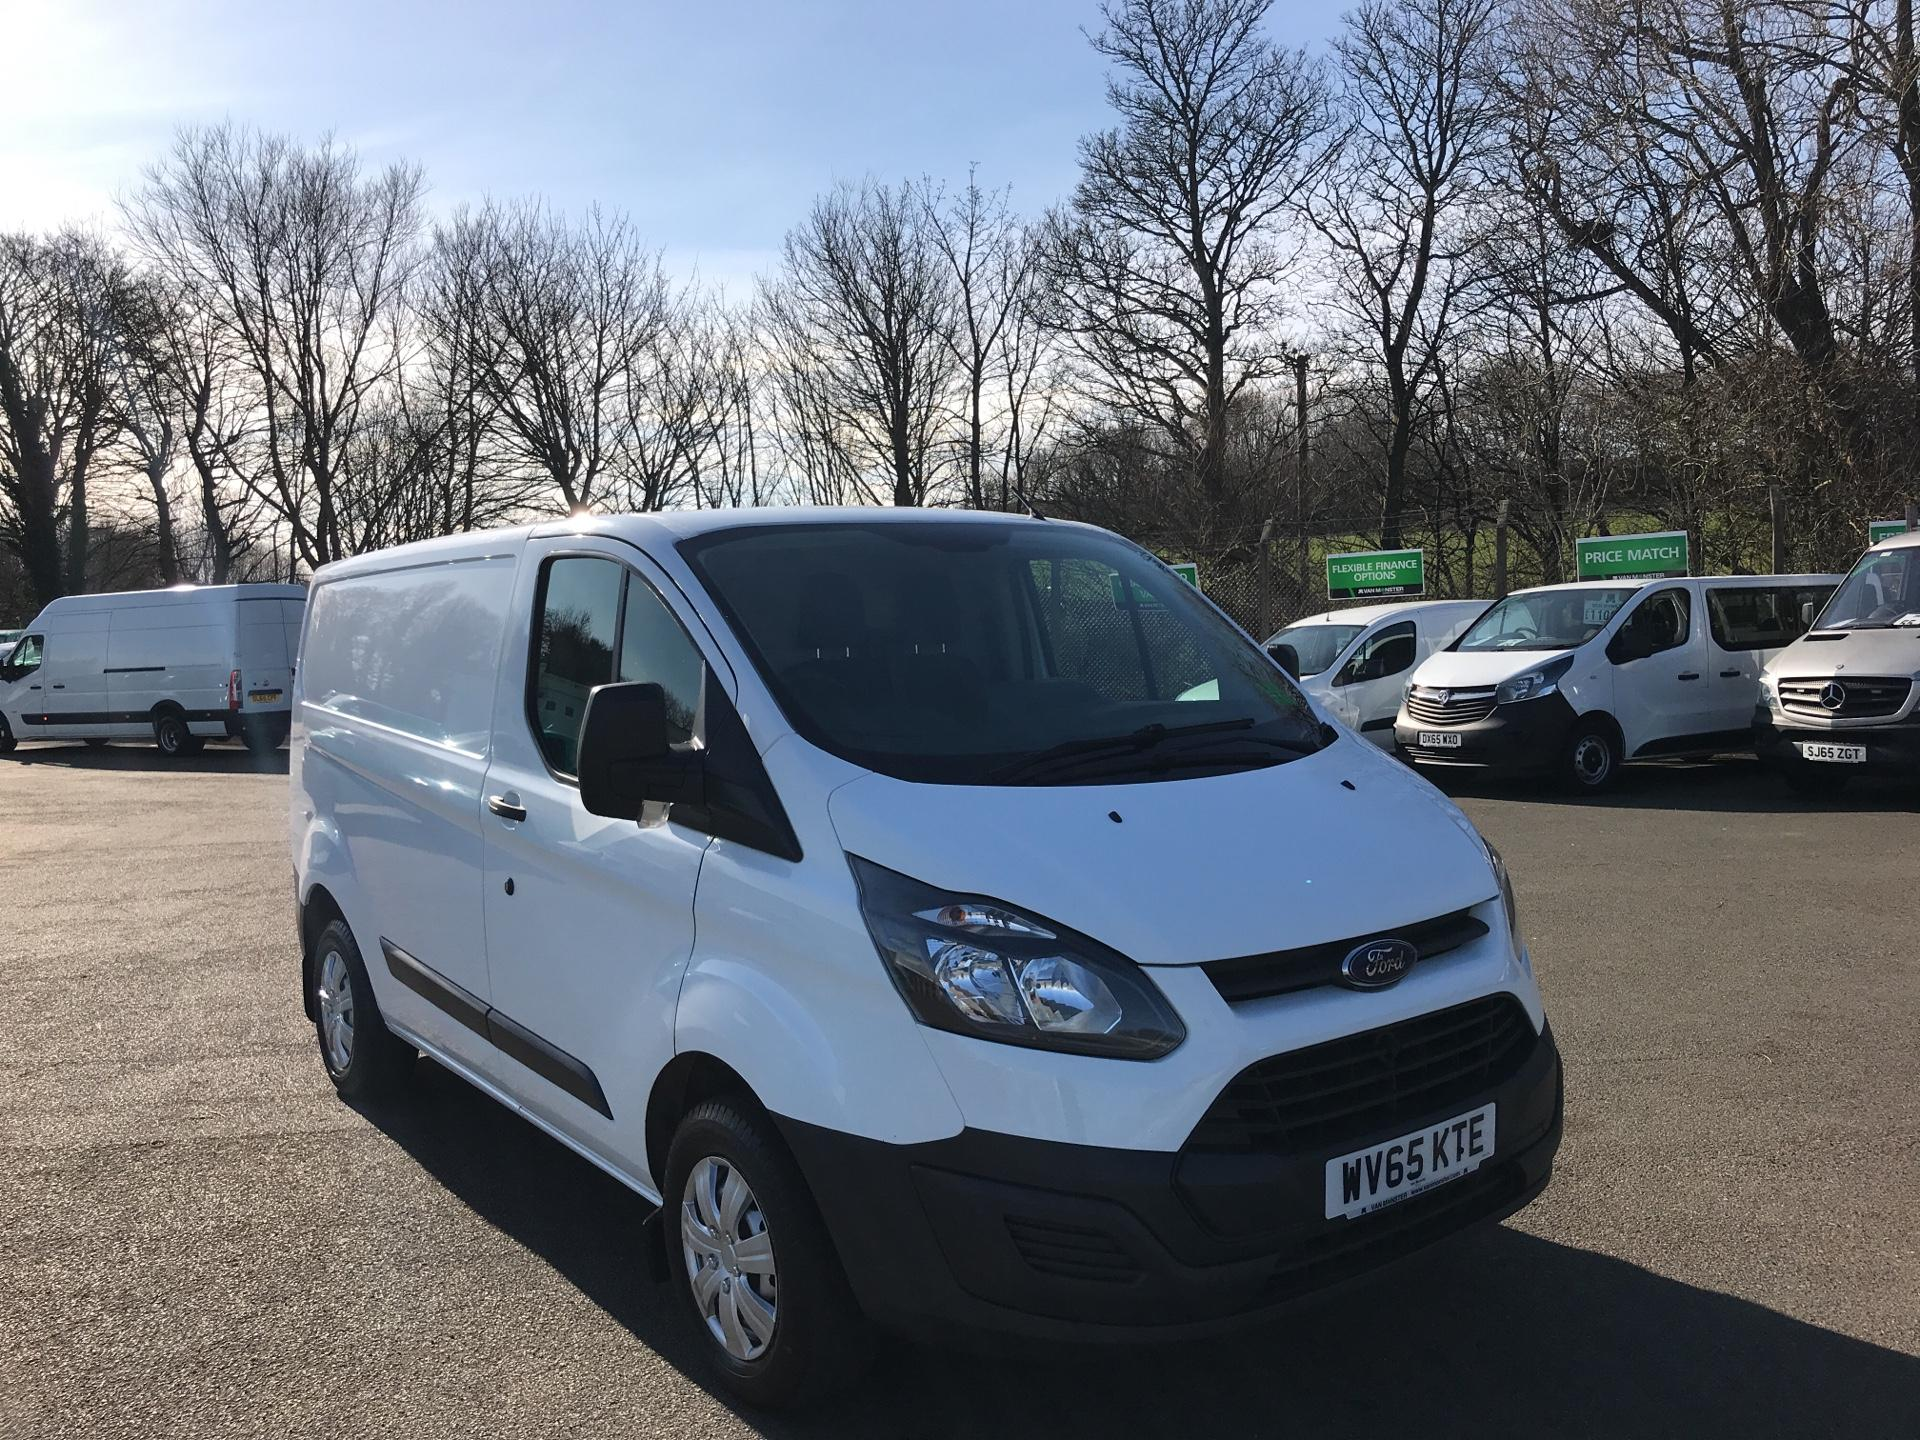 2015 Ford Transit Custom 290 L1 DIESEL FWD 2.2  TDCI 100PS LOW ROOF VAN EURO 5 (WV65KTE)